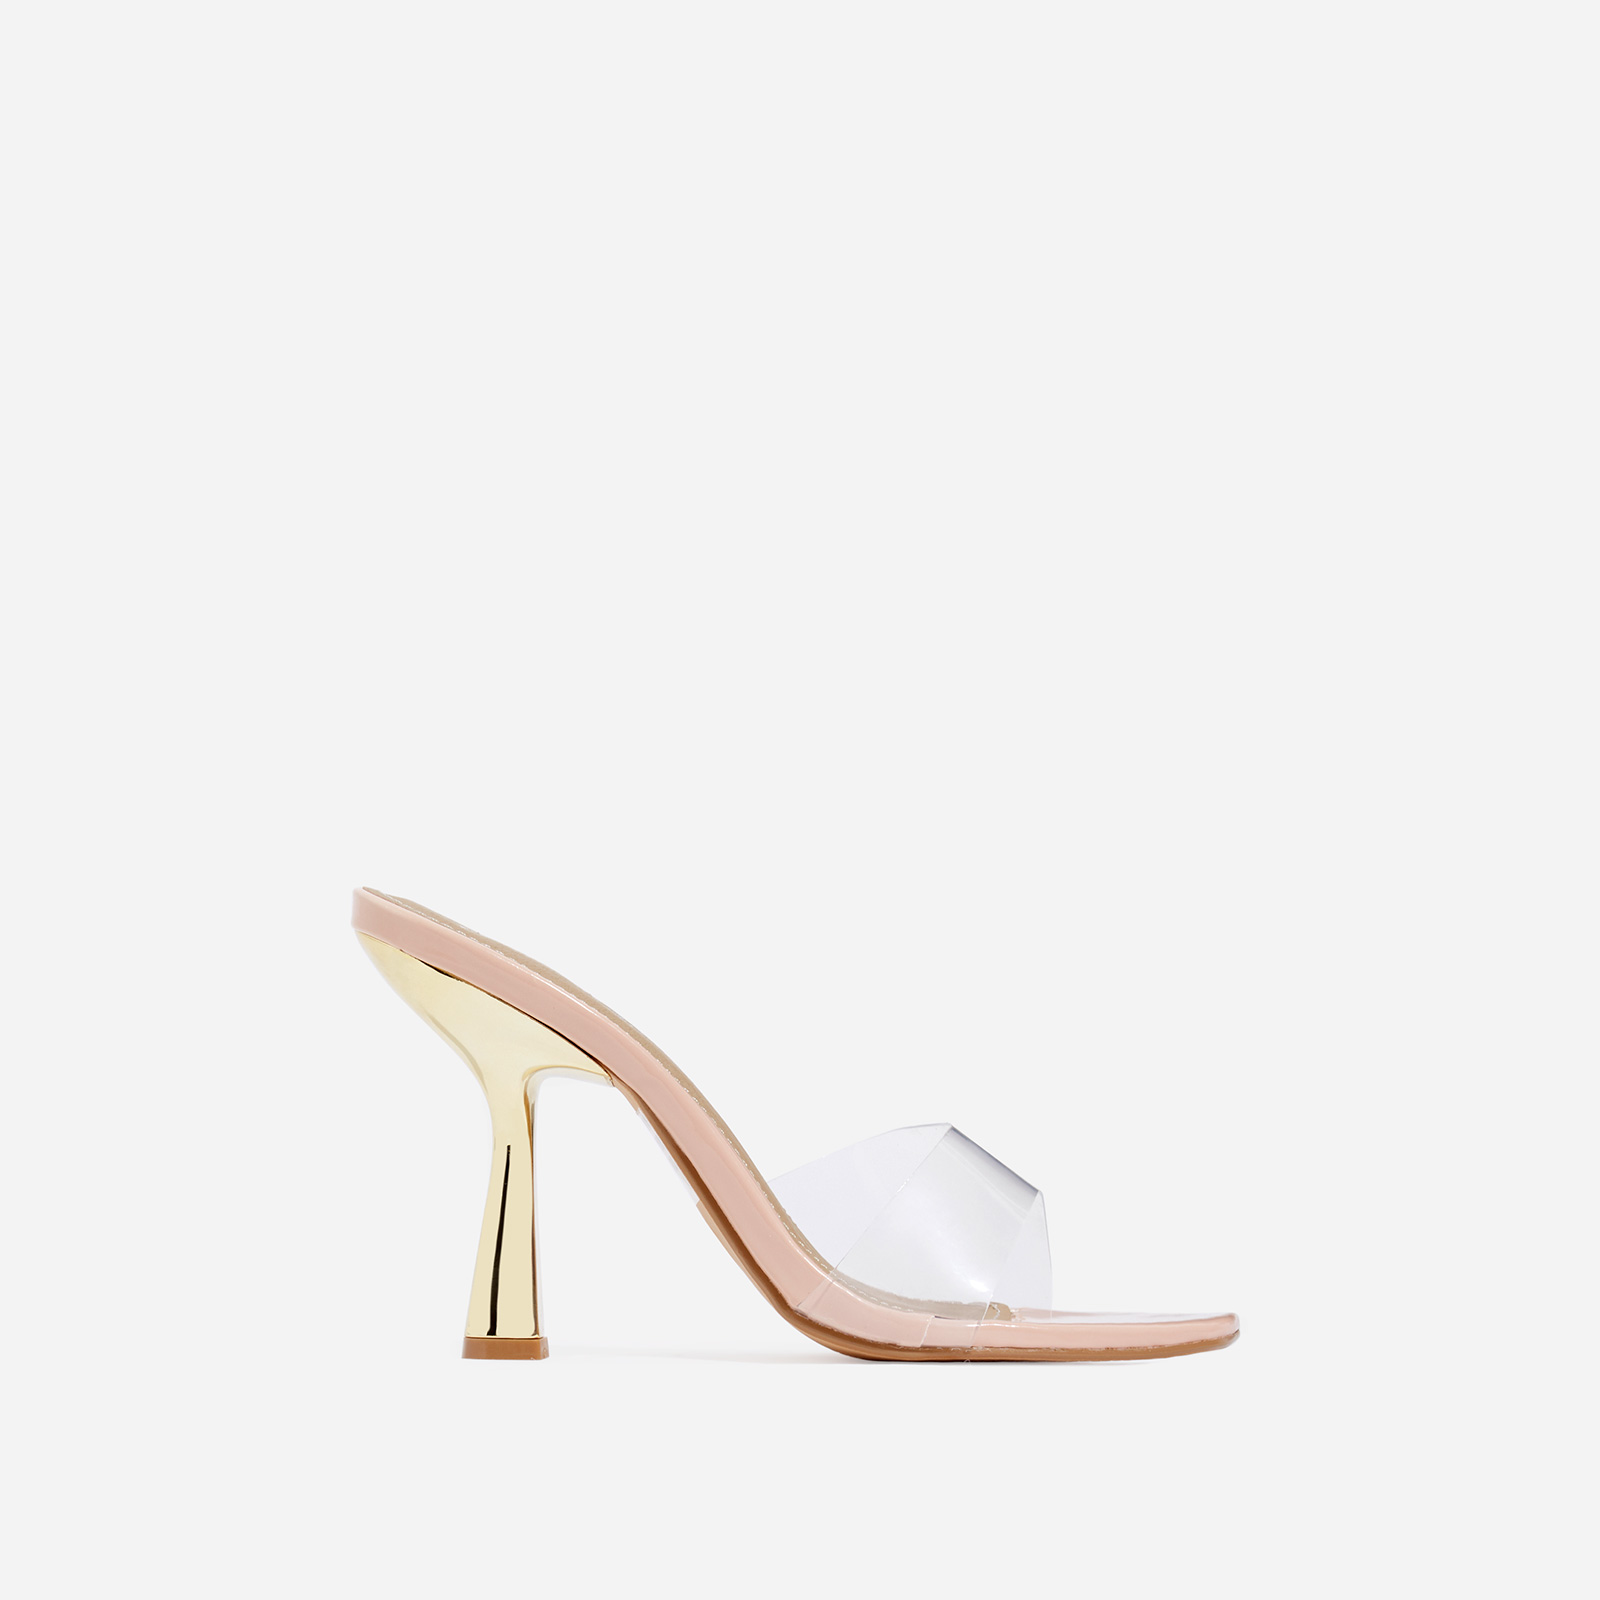 Found Square Peep Toe Clear Perspex Heel Mule In Nude Patent